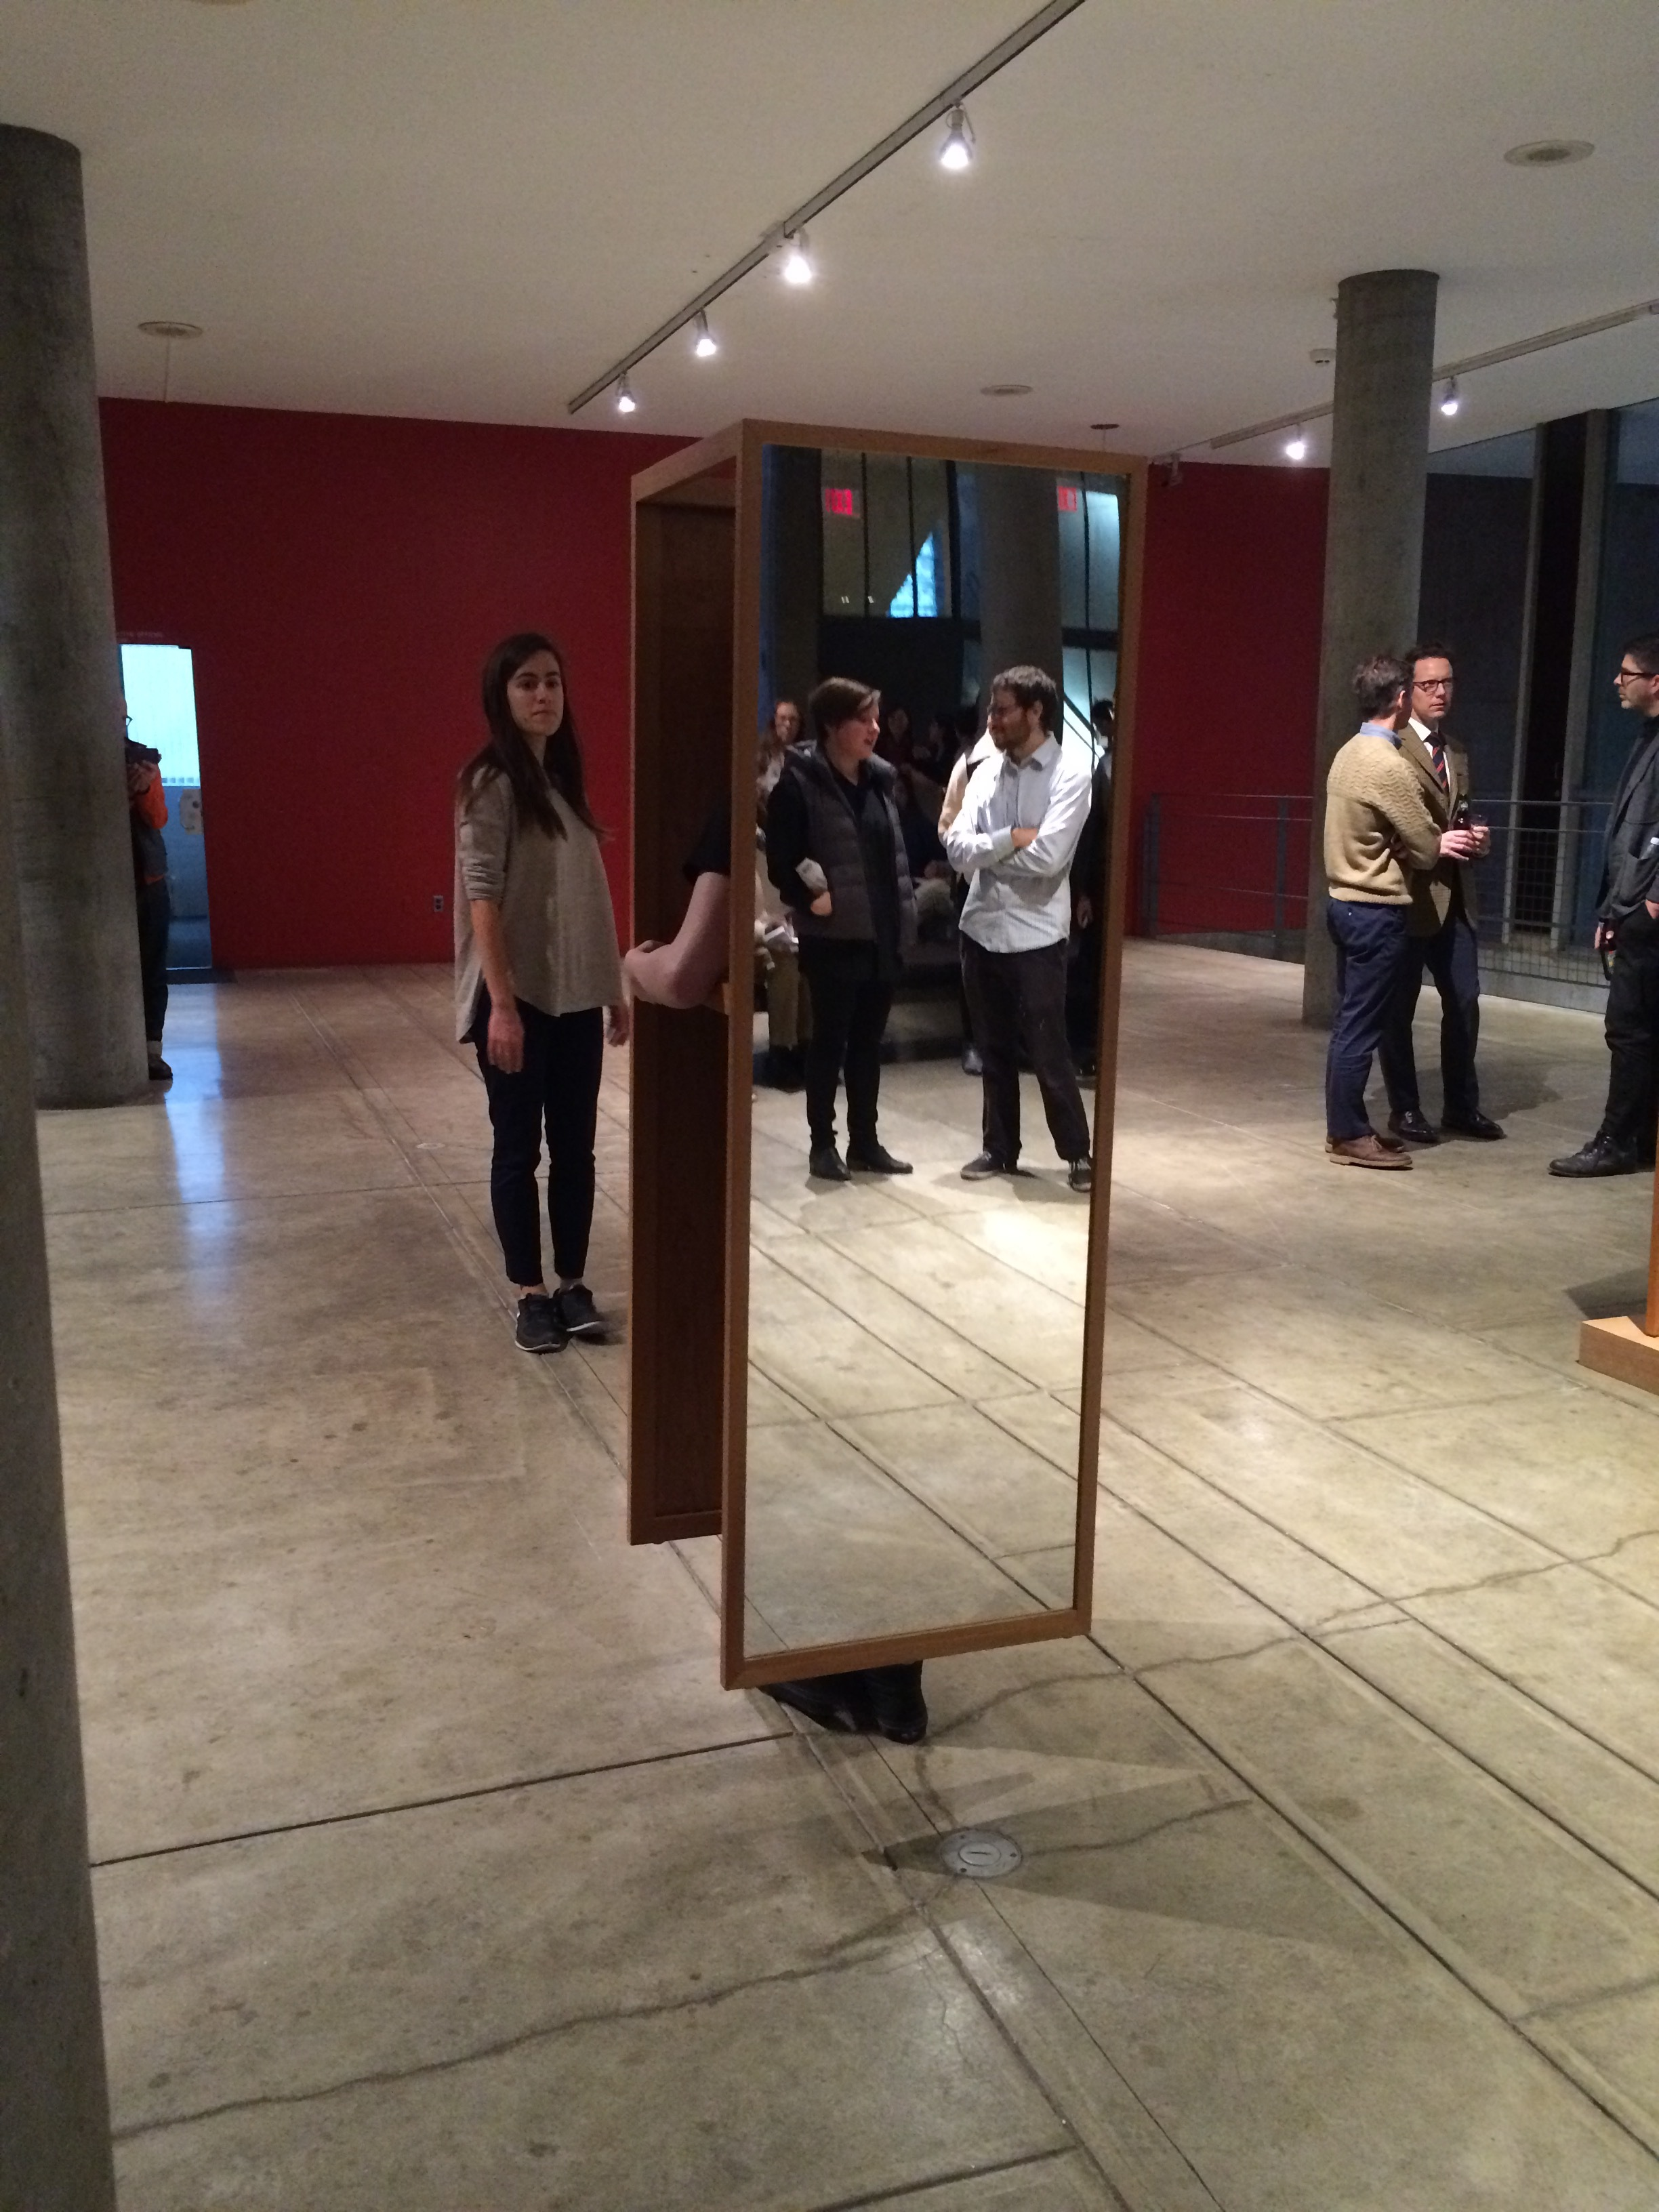 josiah-mcelheny-two-walking-mirrors-for-the-carpenter-center_22707070859_o.jpg